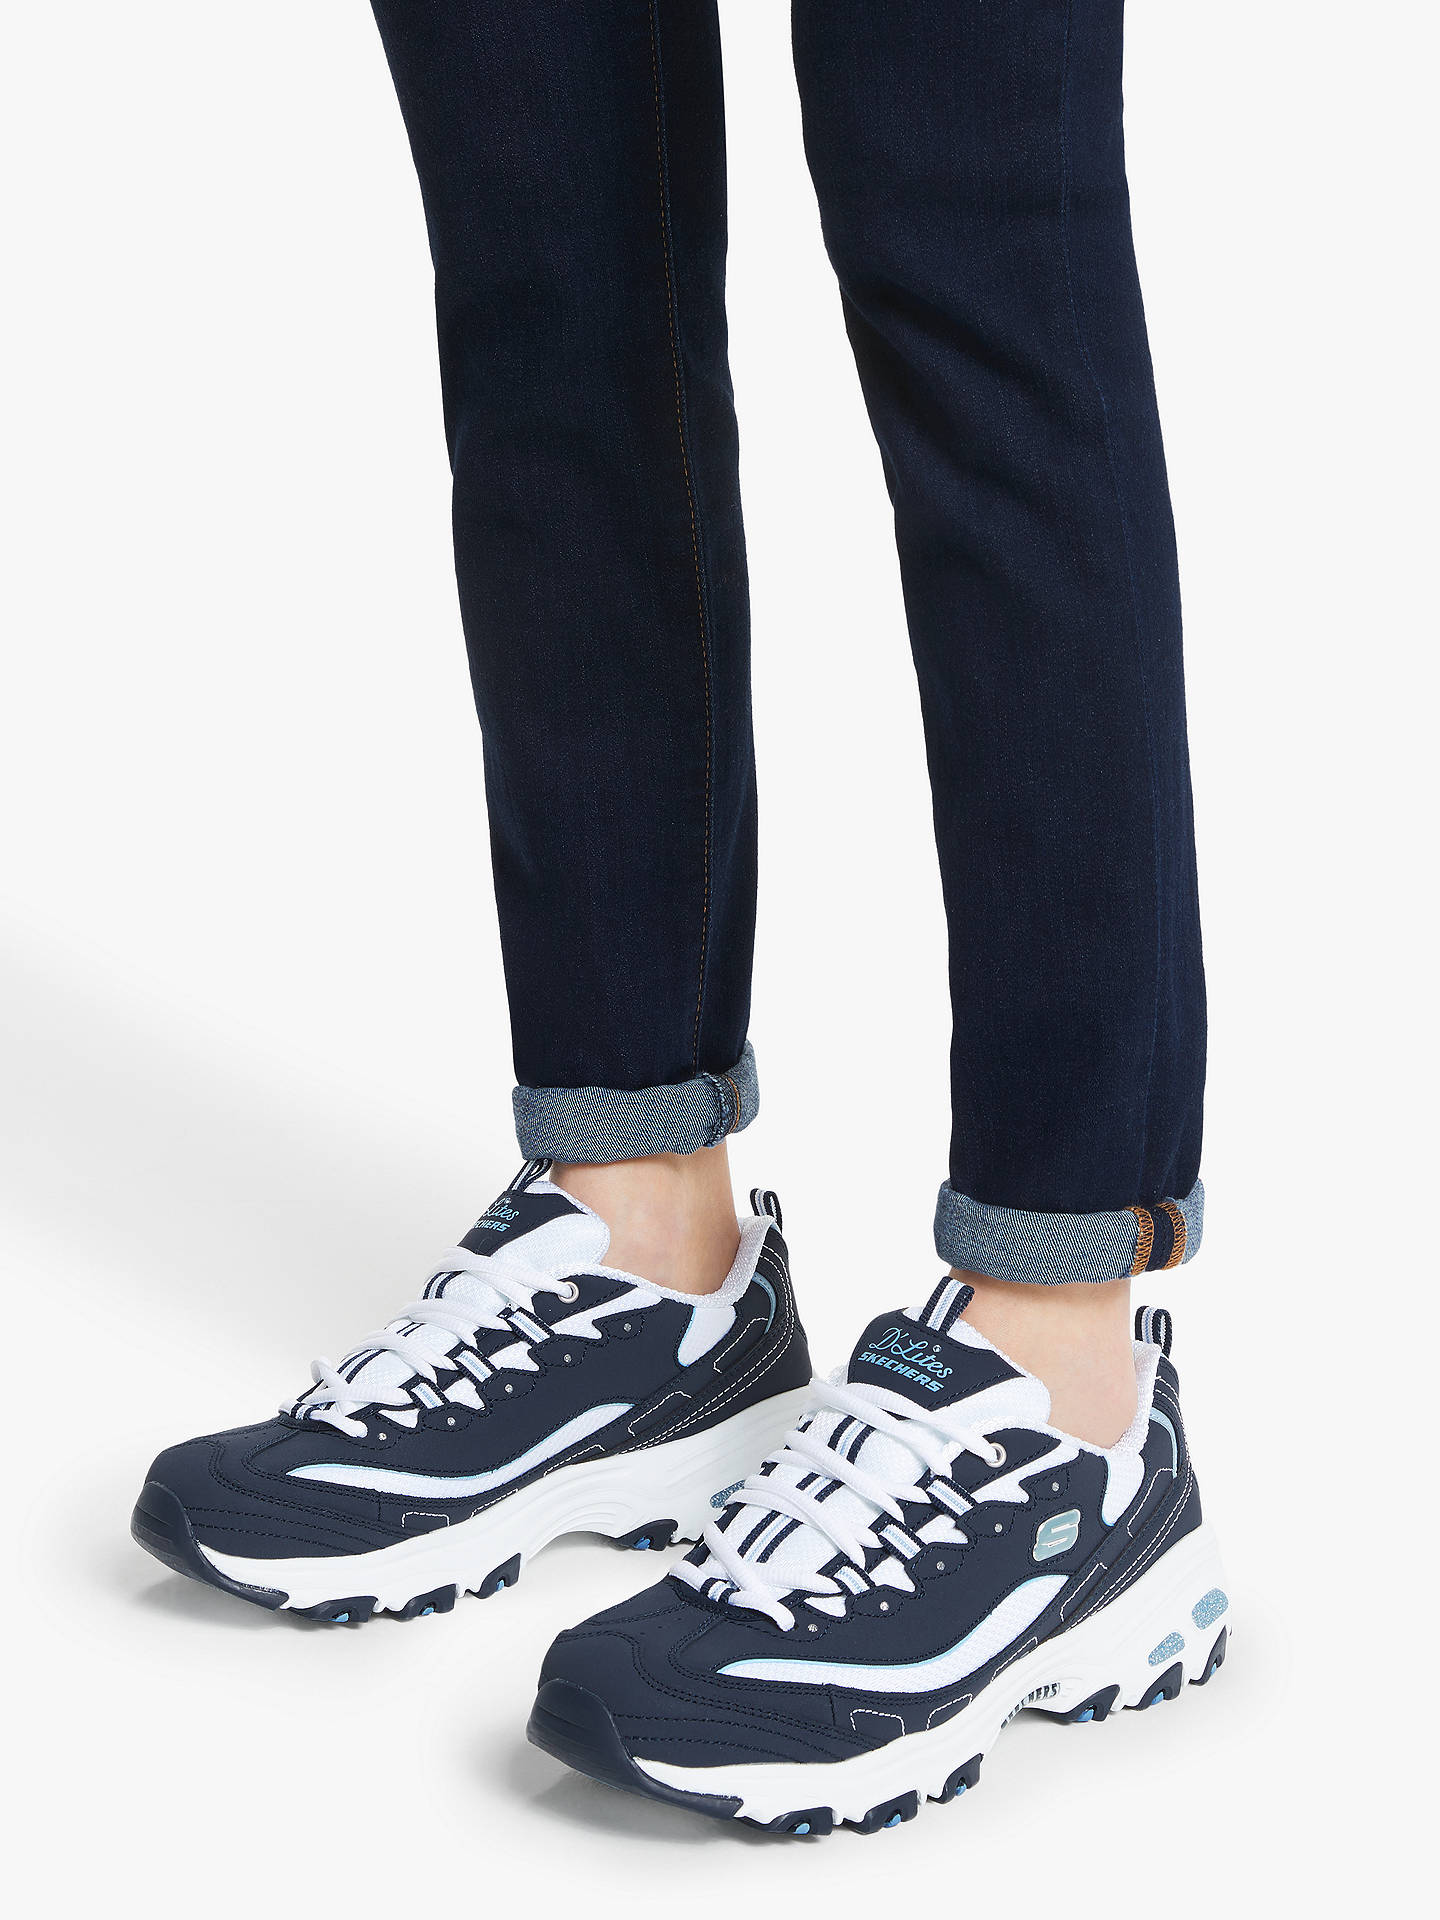 Skechers D'Lites Trainers, Navy at John Lewis & Partners